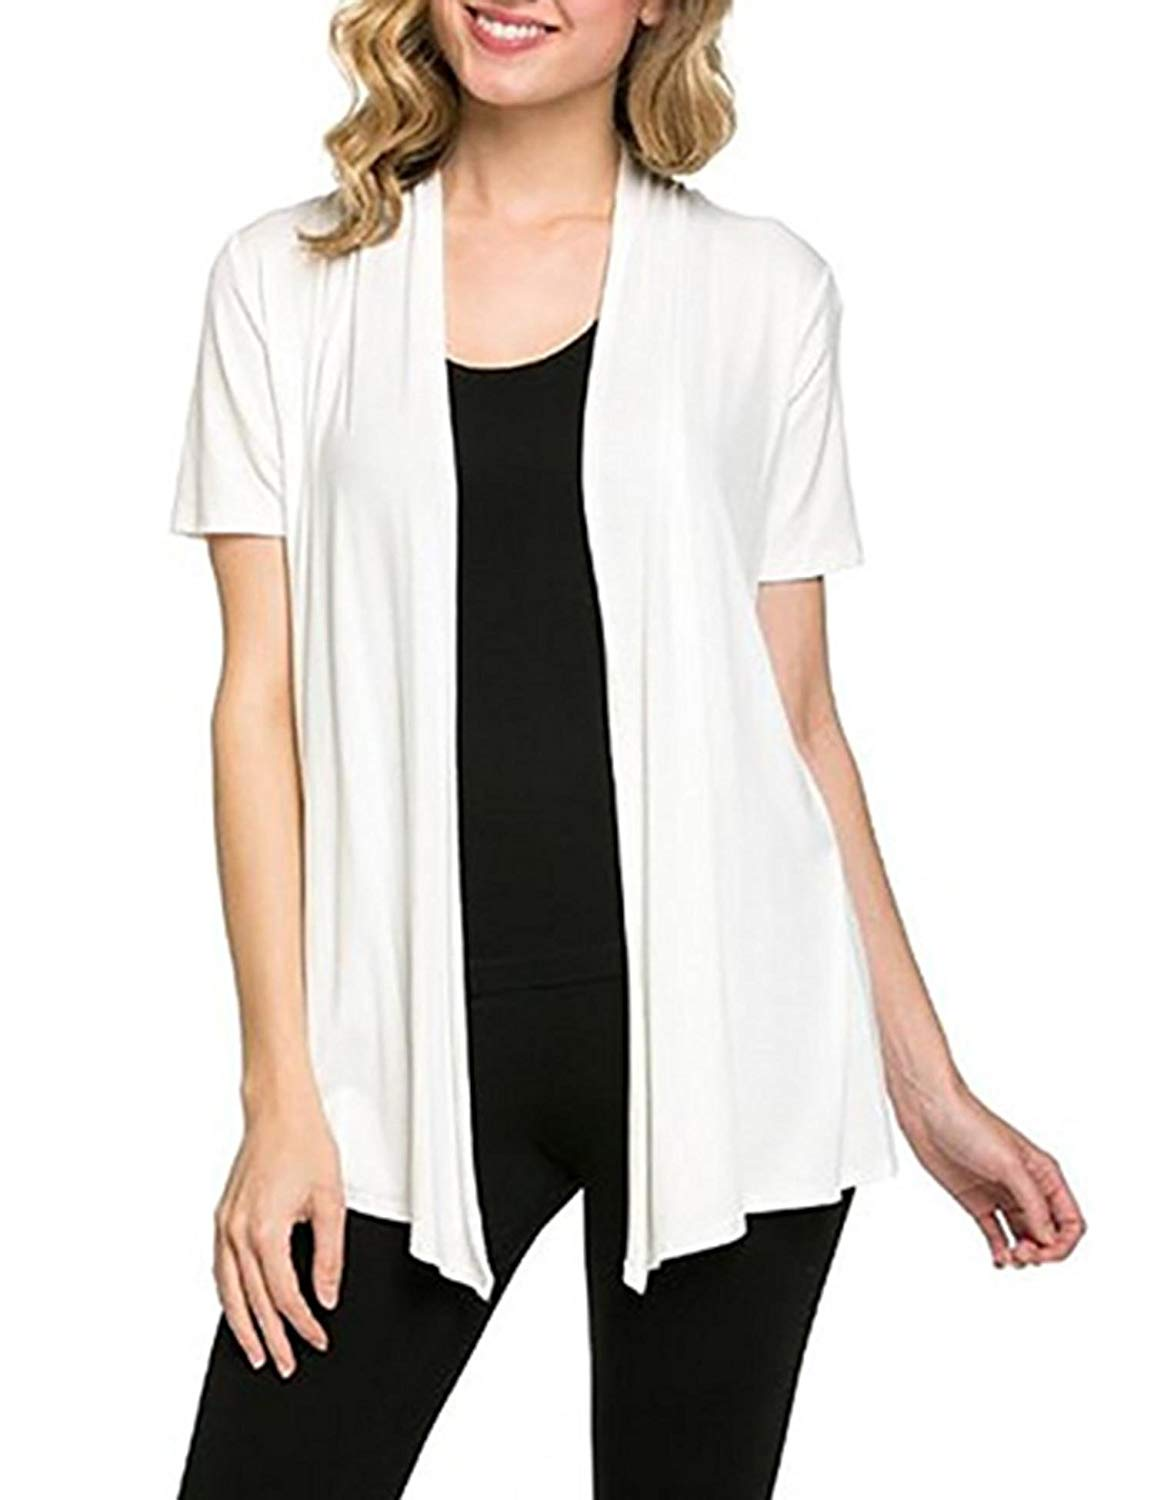 b30a2b58c87 Get Quotations · Dethler Short Sleeve Open Front Cardigan White White Open  Cardigan Plus Size Drape Cardigan Lightweight Cardigans